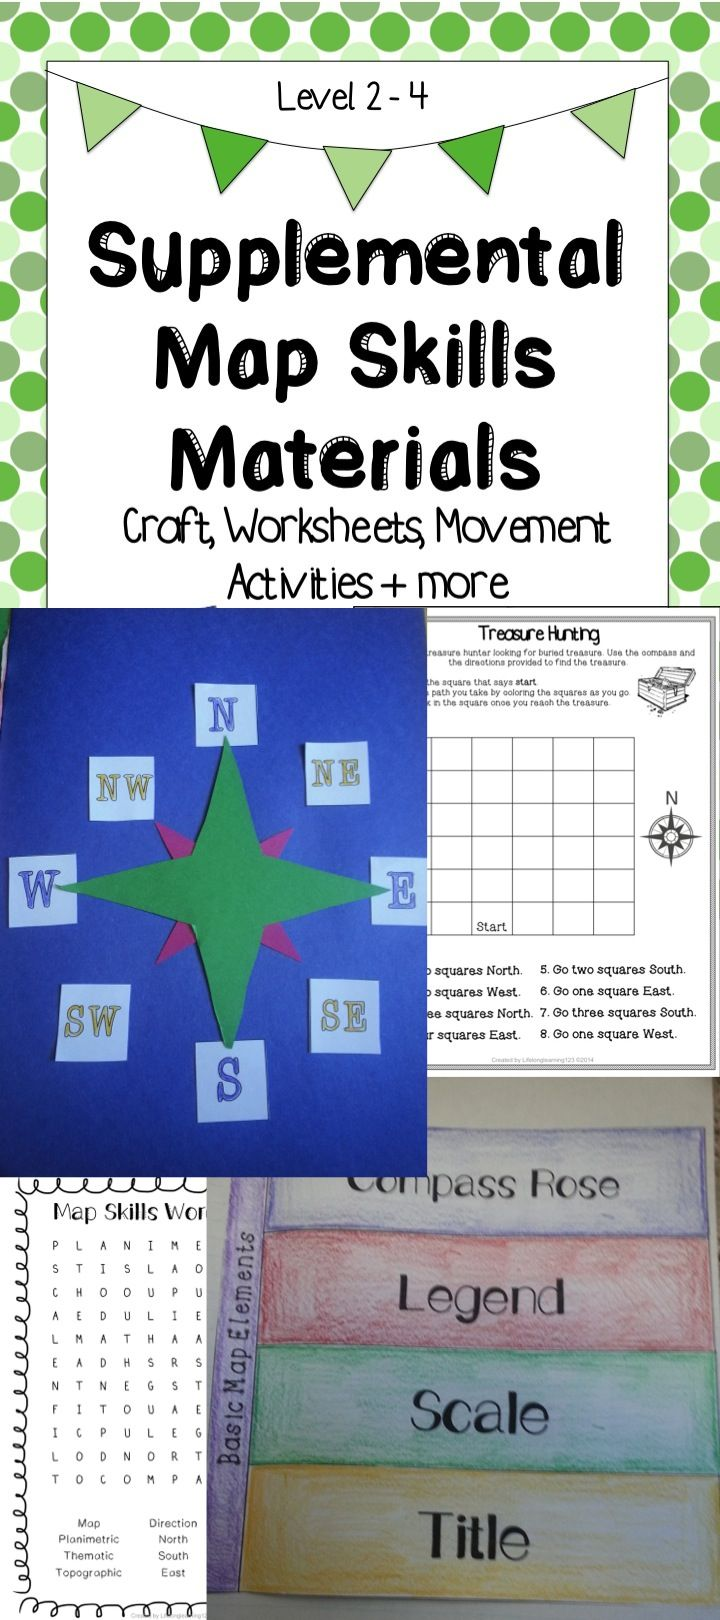 Worksheets Types Of Maps Worksheets supplemental map skills materials craft worksheets movement activities more